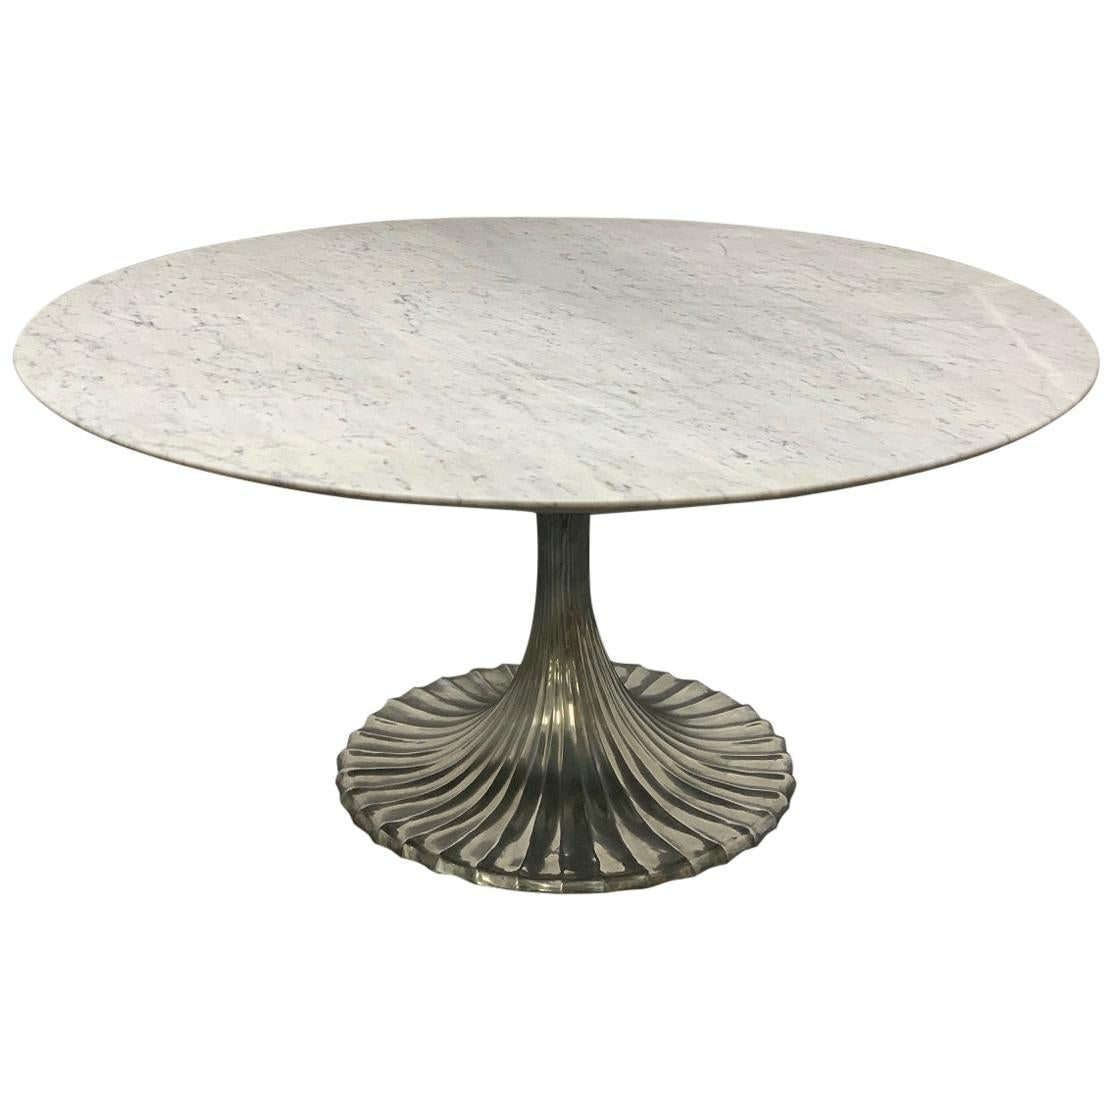 Large Round Carrara Marble-Top Dining Table with Cast Aluminum Base